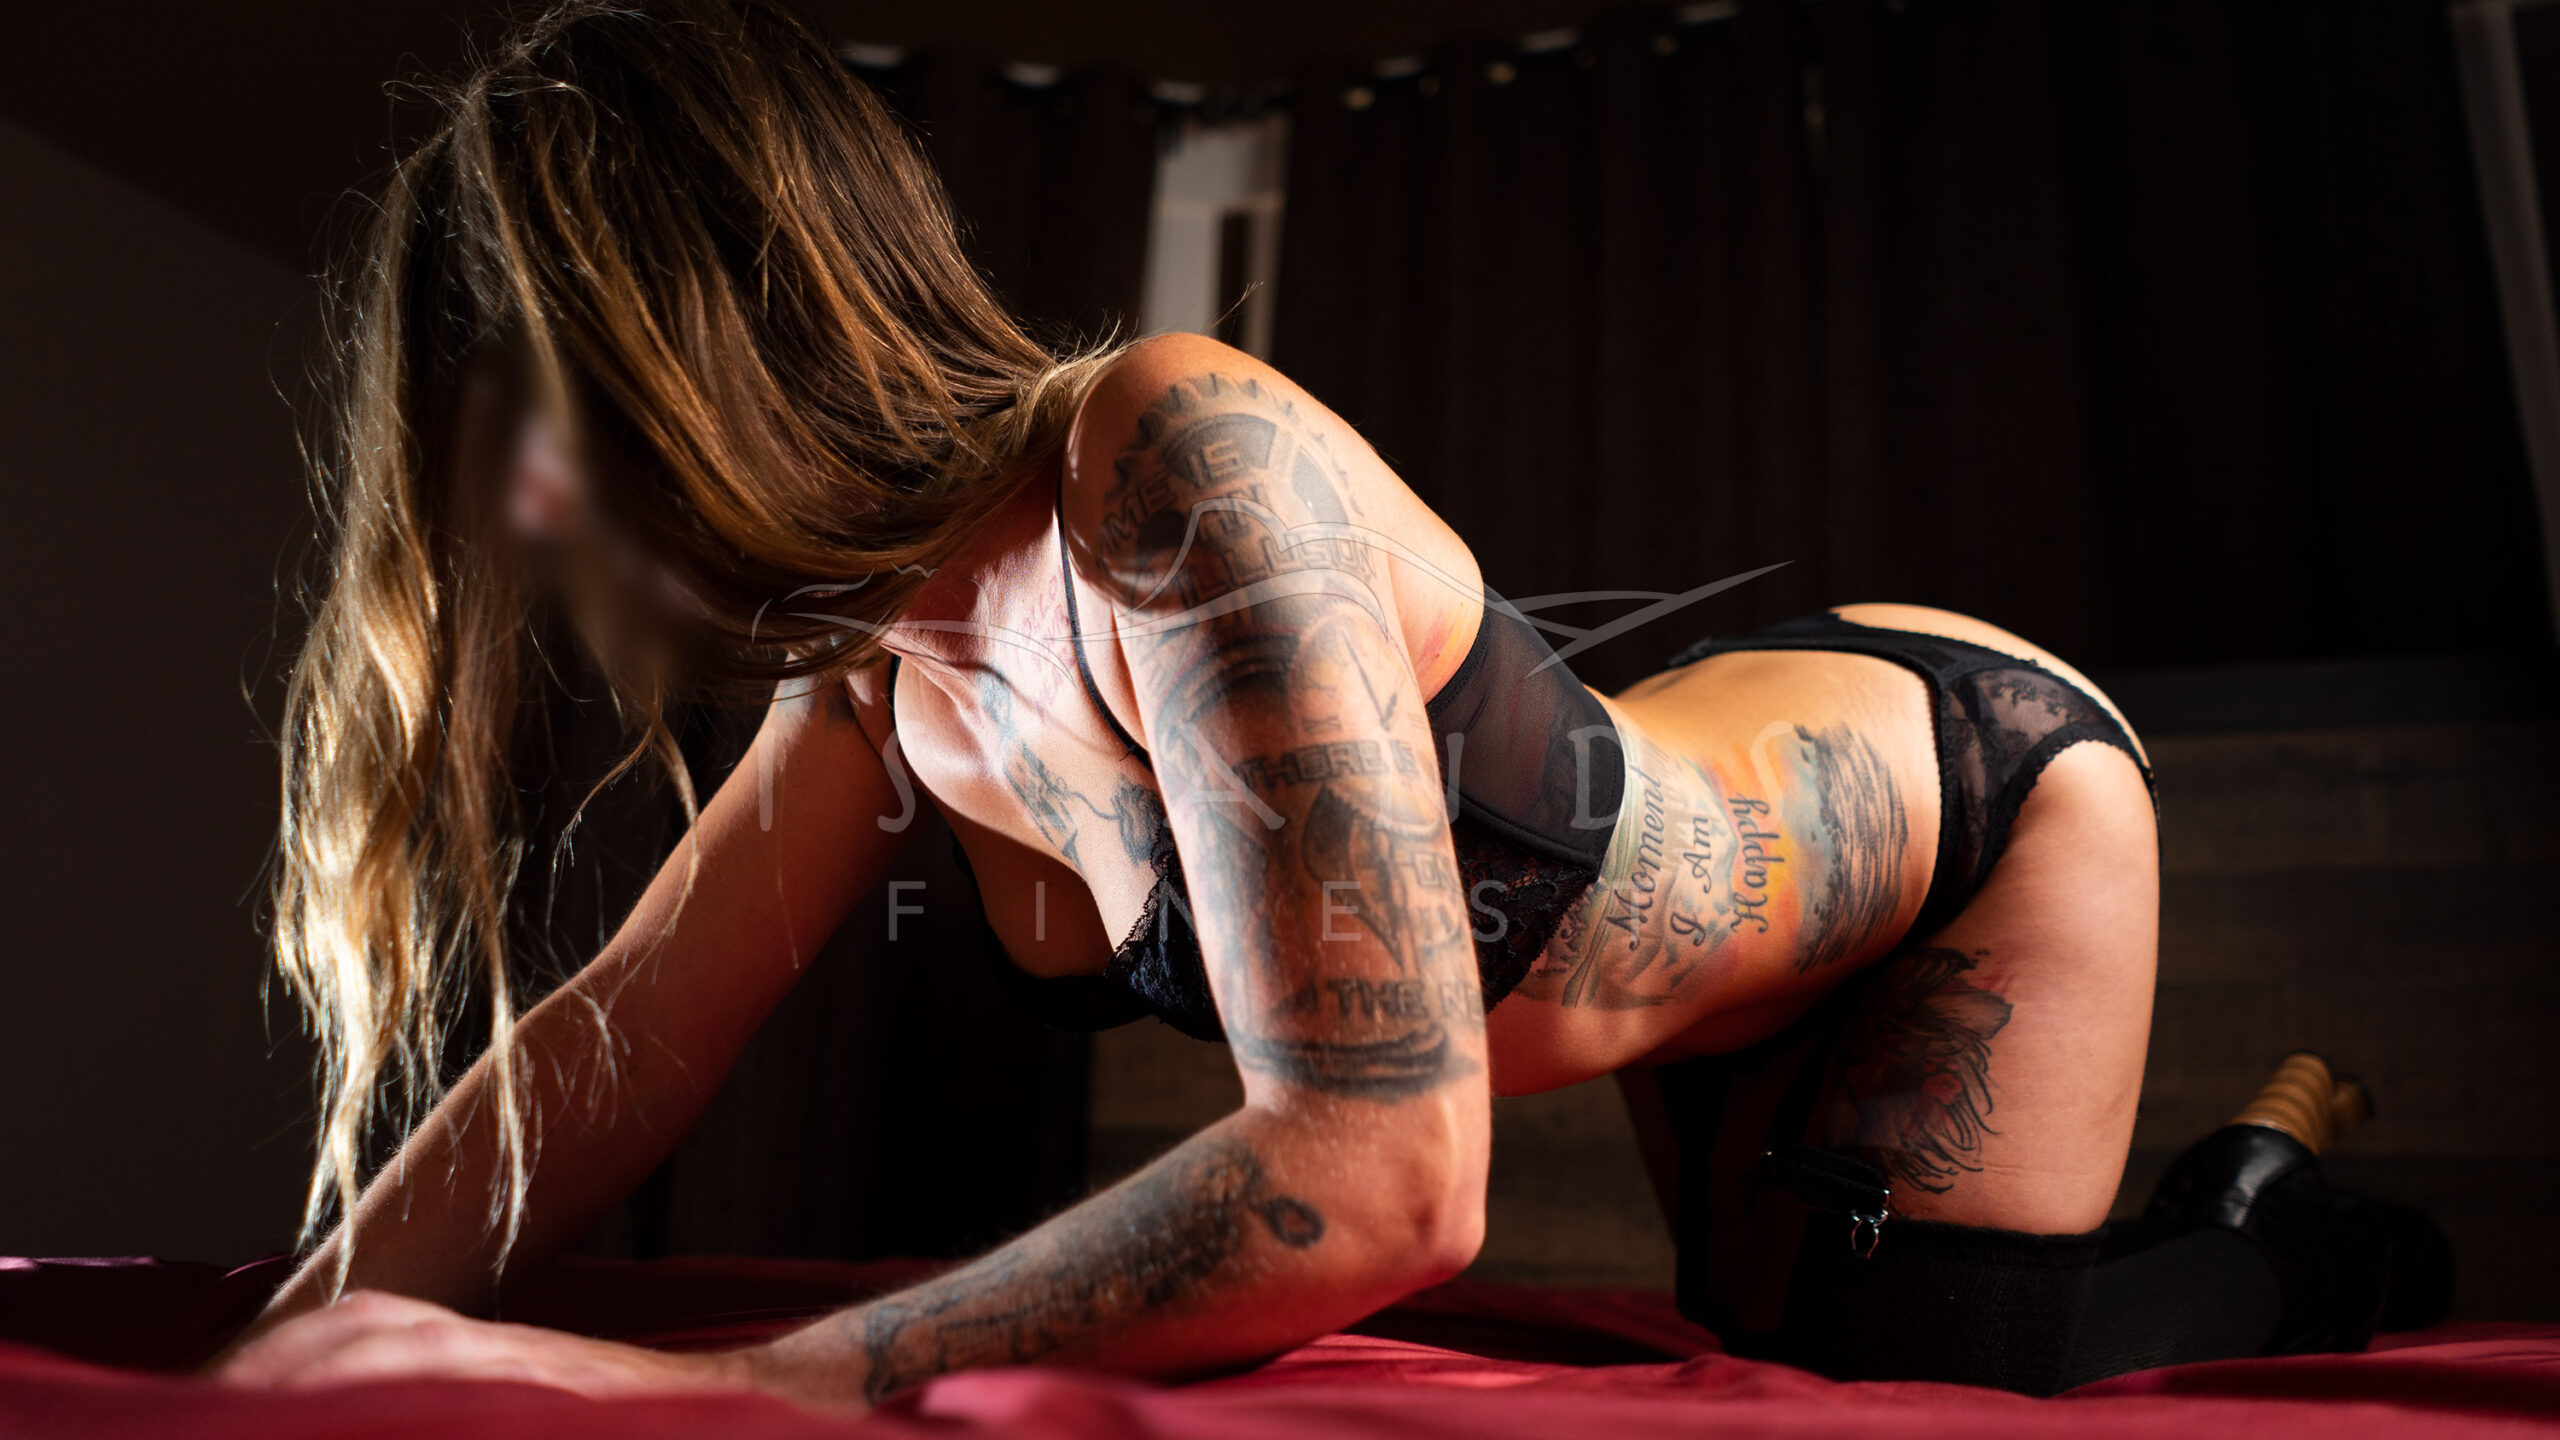 Escort Averie kneeling on a bed at Island's Finest escort agency in Victoria, BC